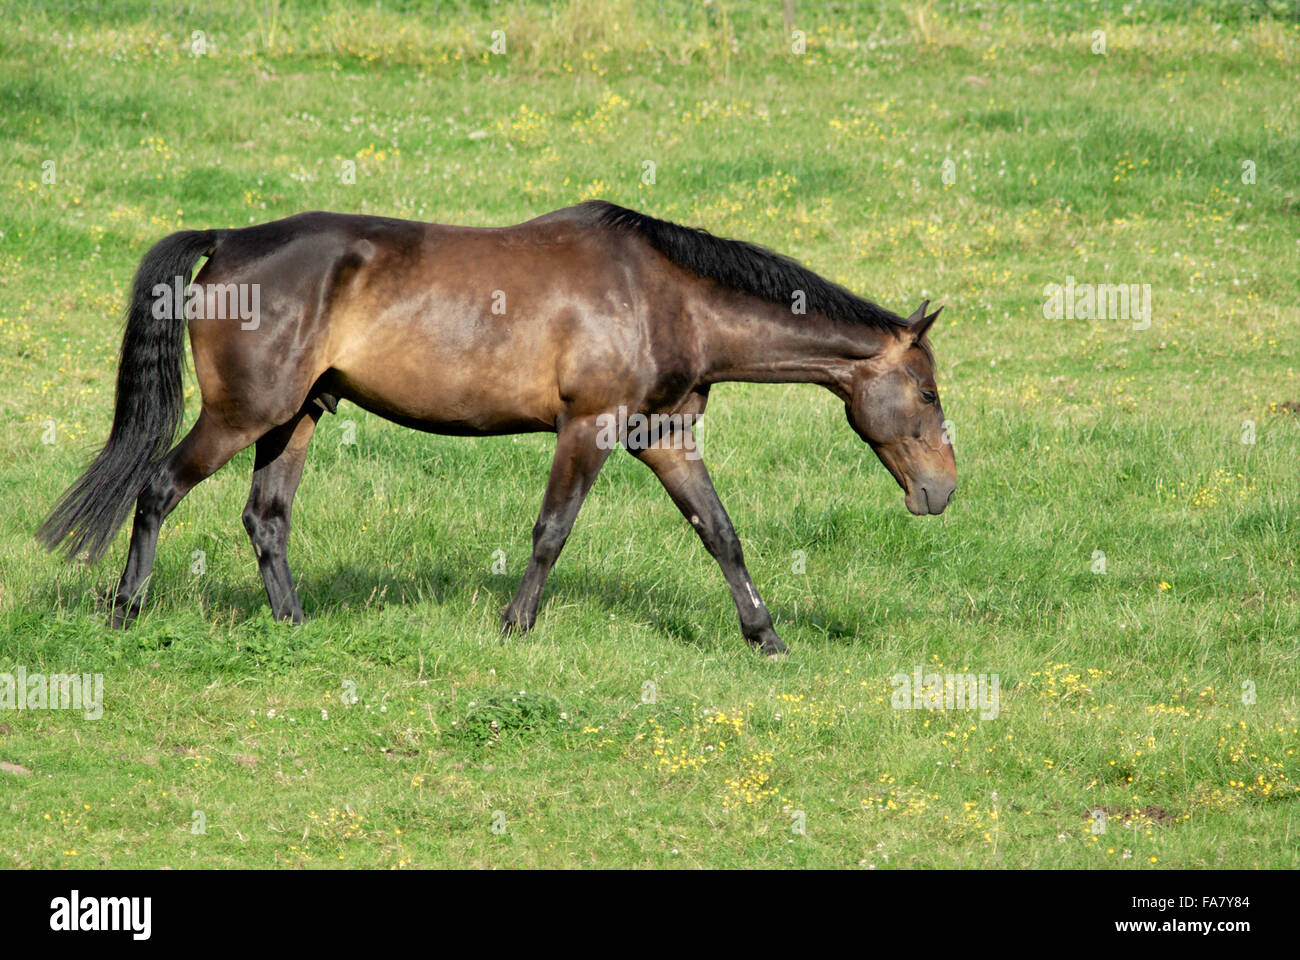 Brown stallion walking in a field - Stock Image